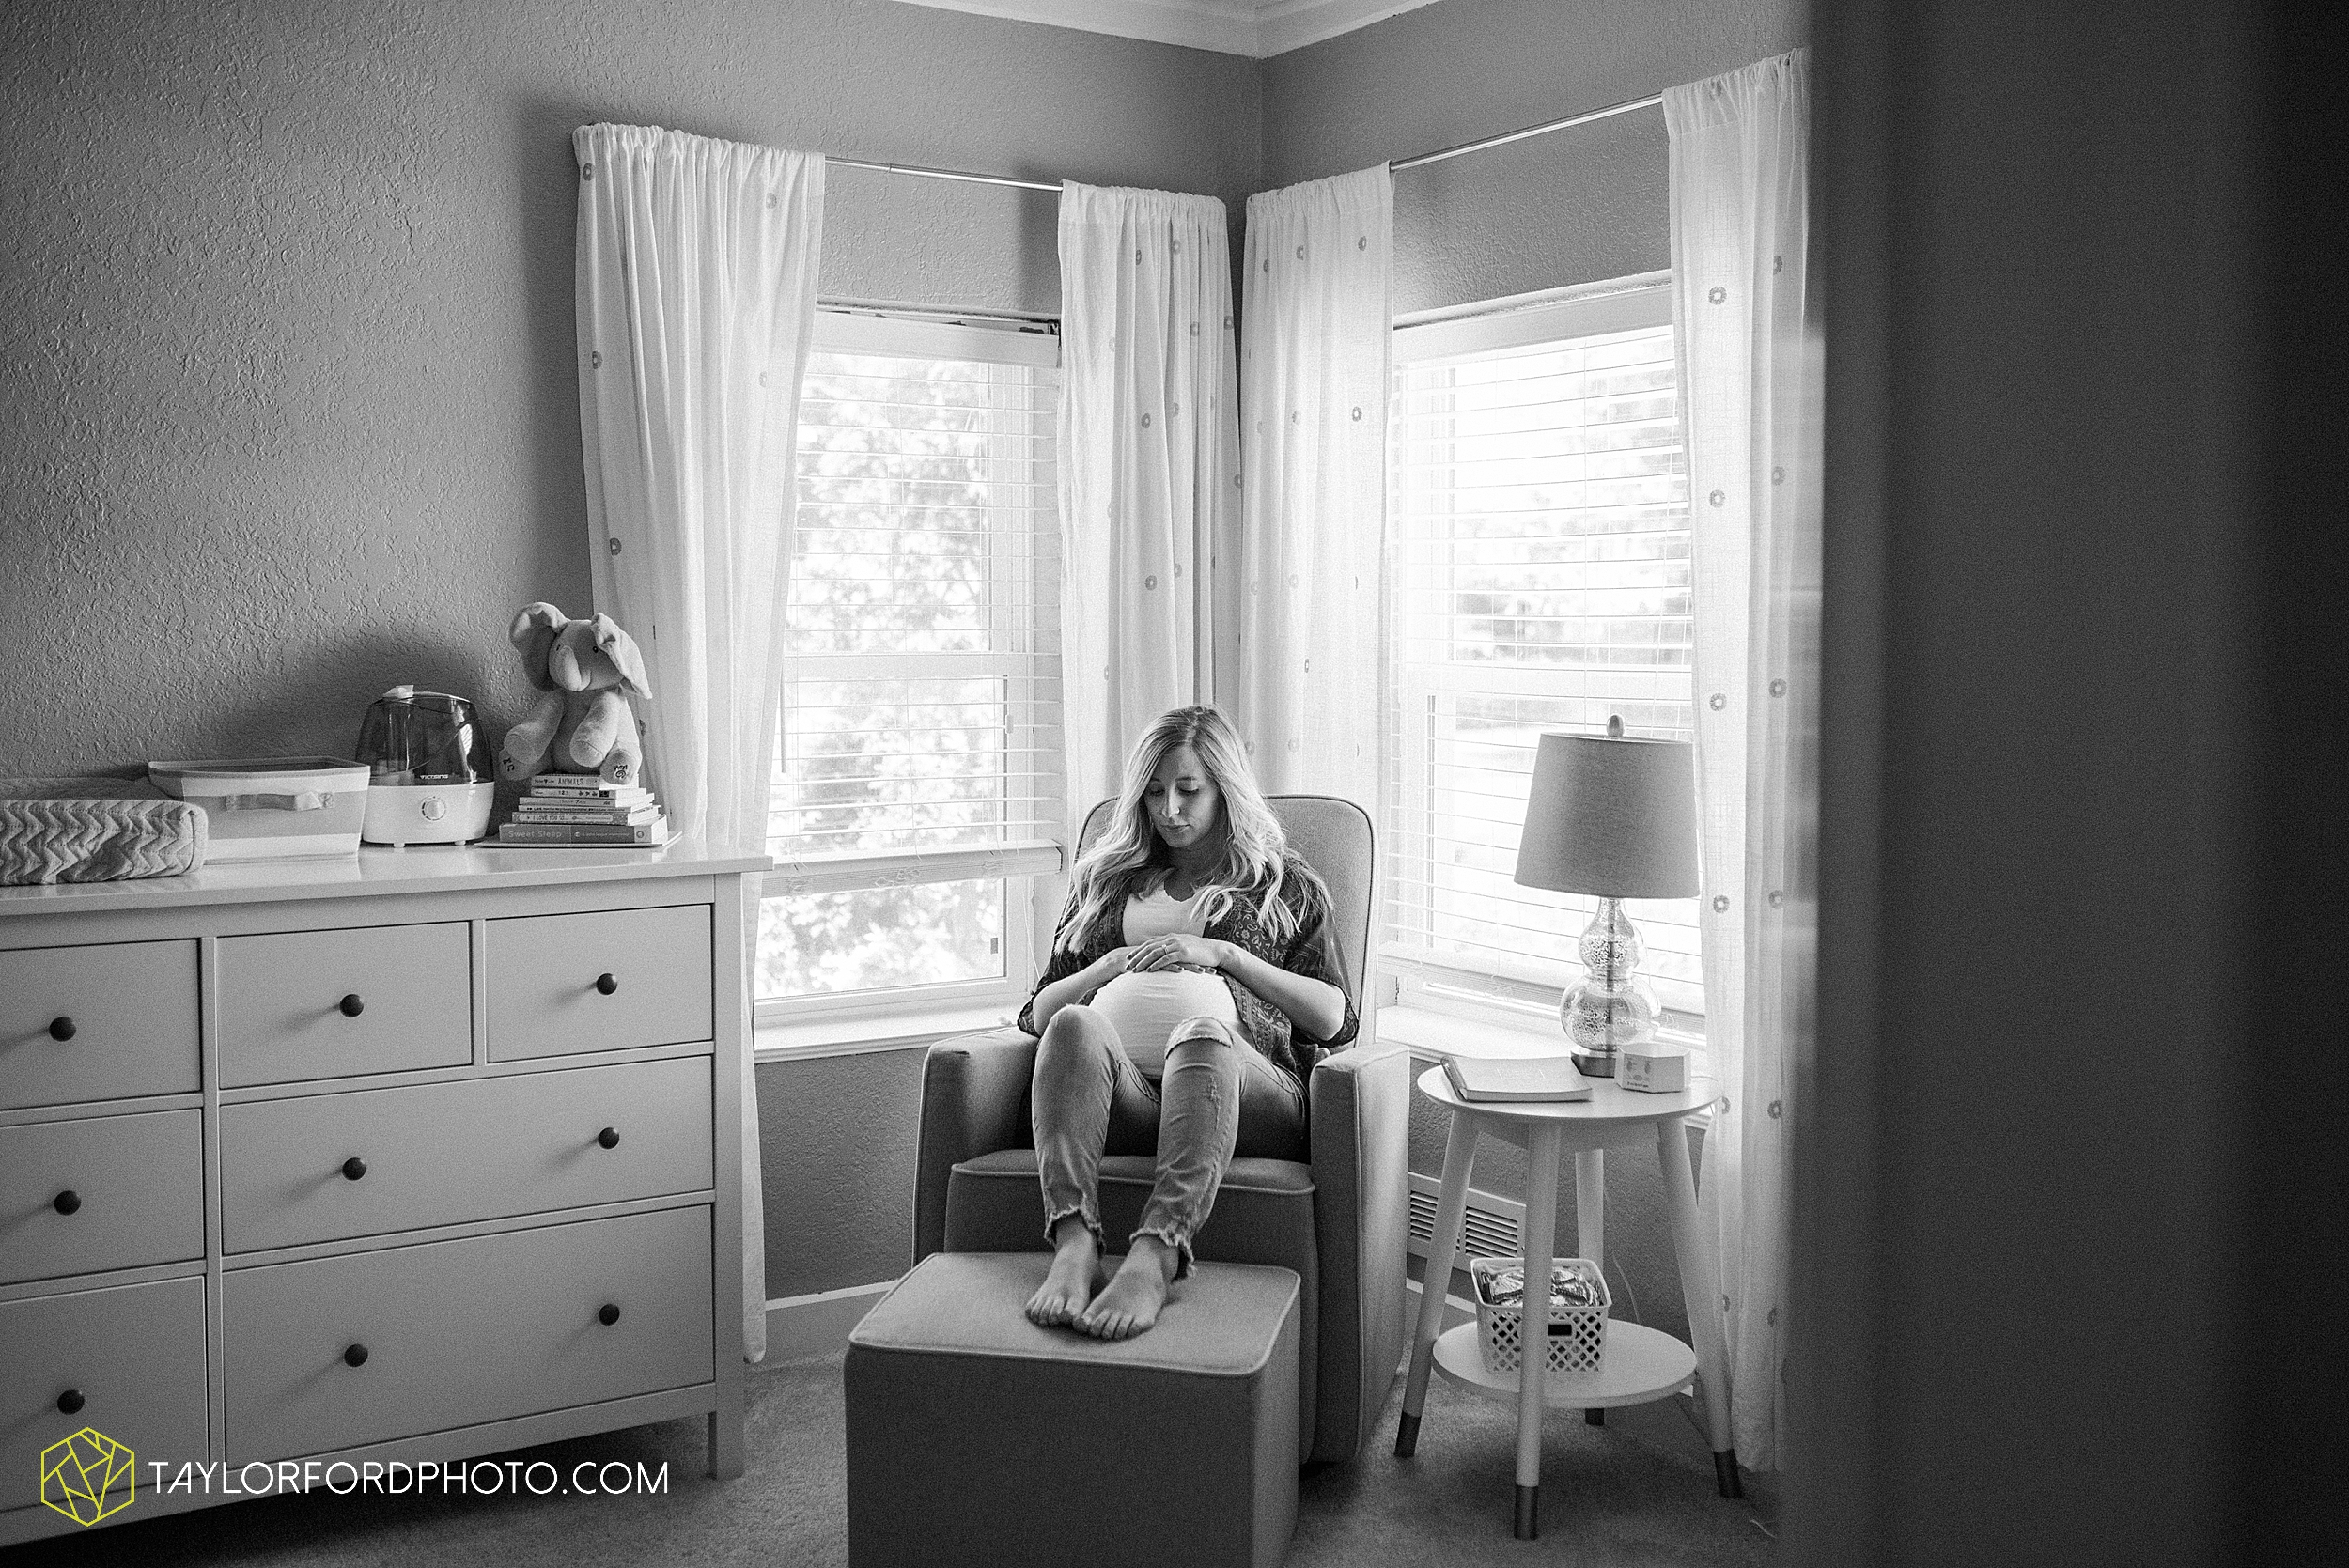 maumee-toledo-ohio-downtown-at-home-maternity-newborn-photographer-photography-taylor-ford-hirschy-photographer_3010.jpg